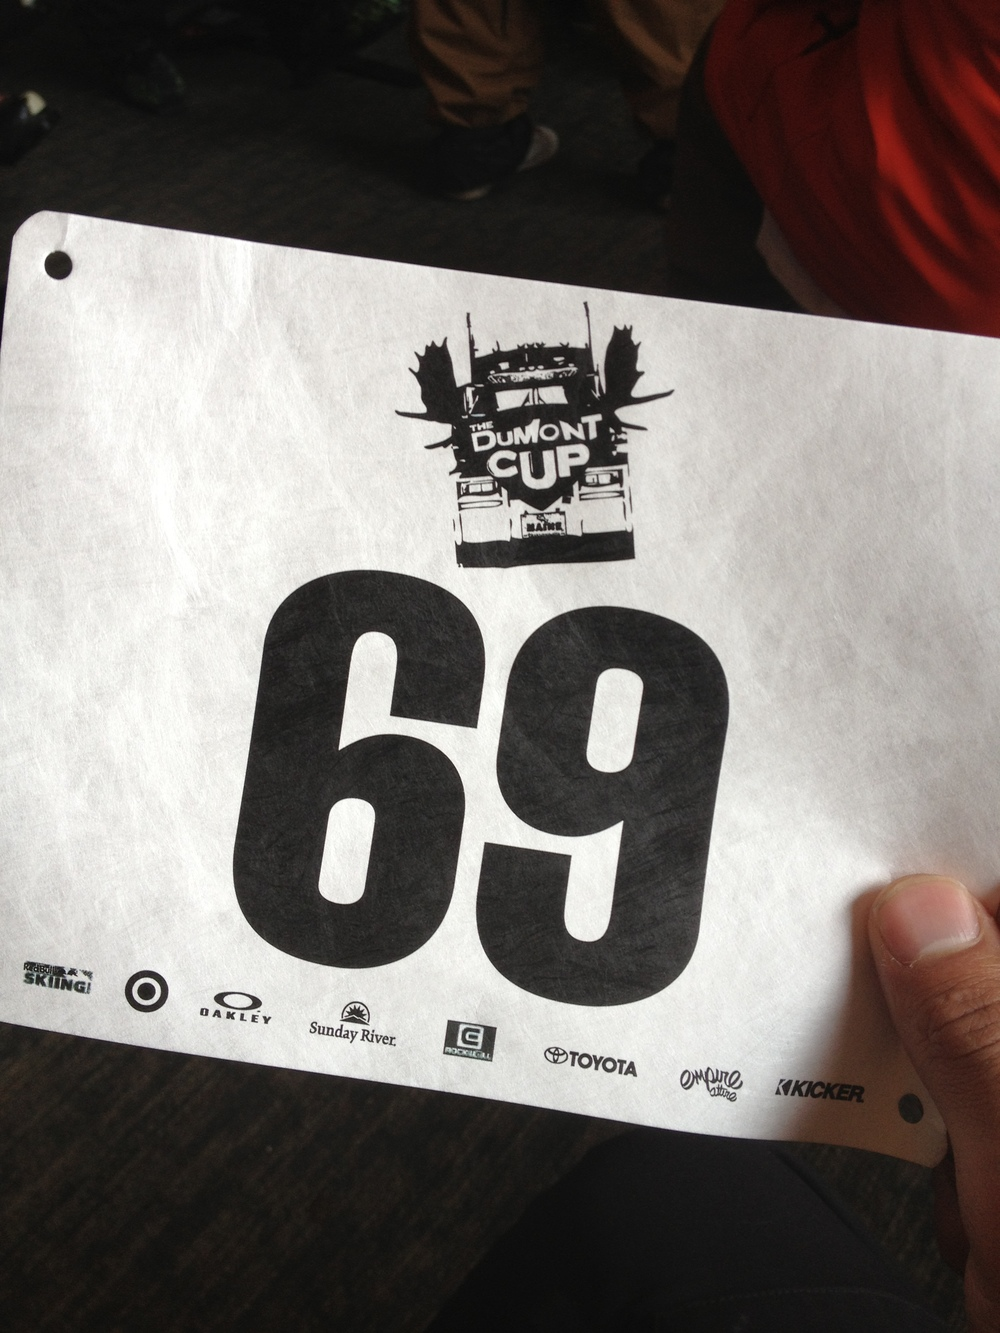 My lucky bib number